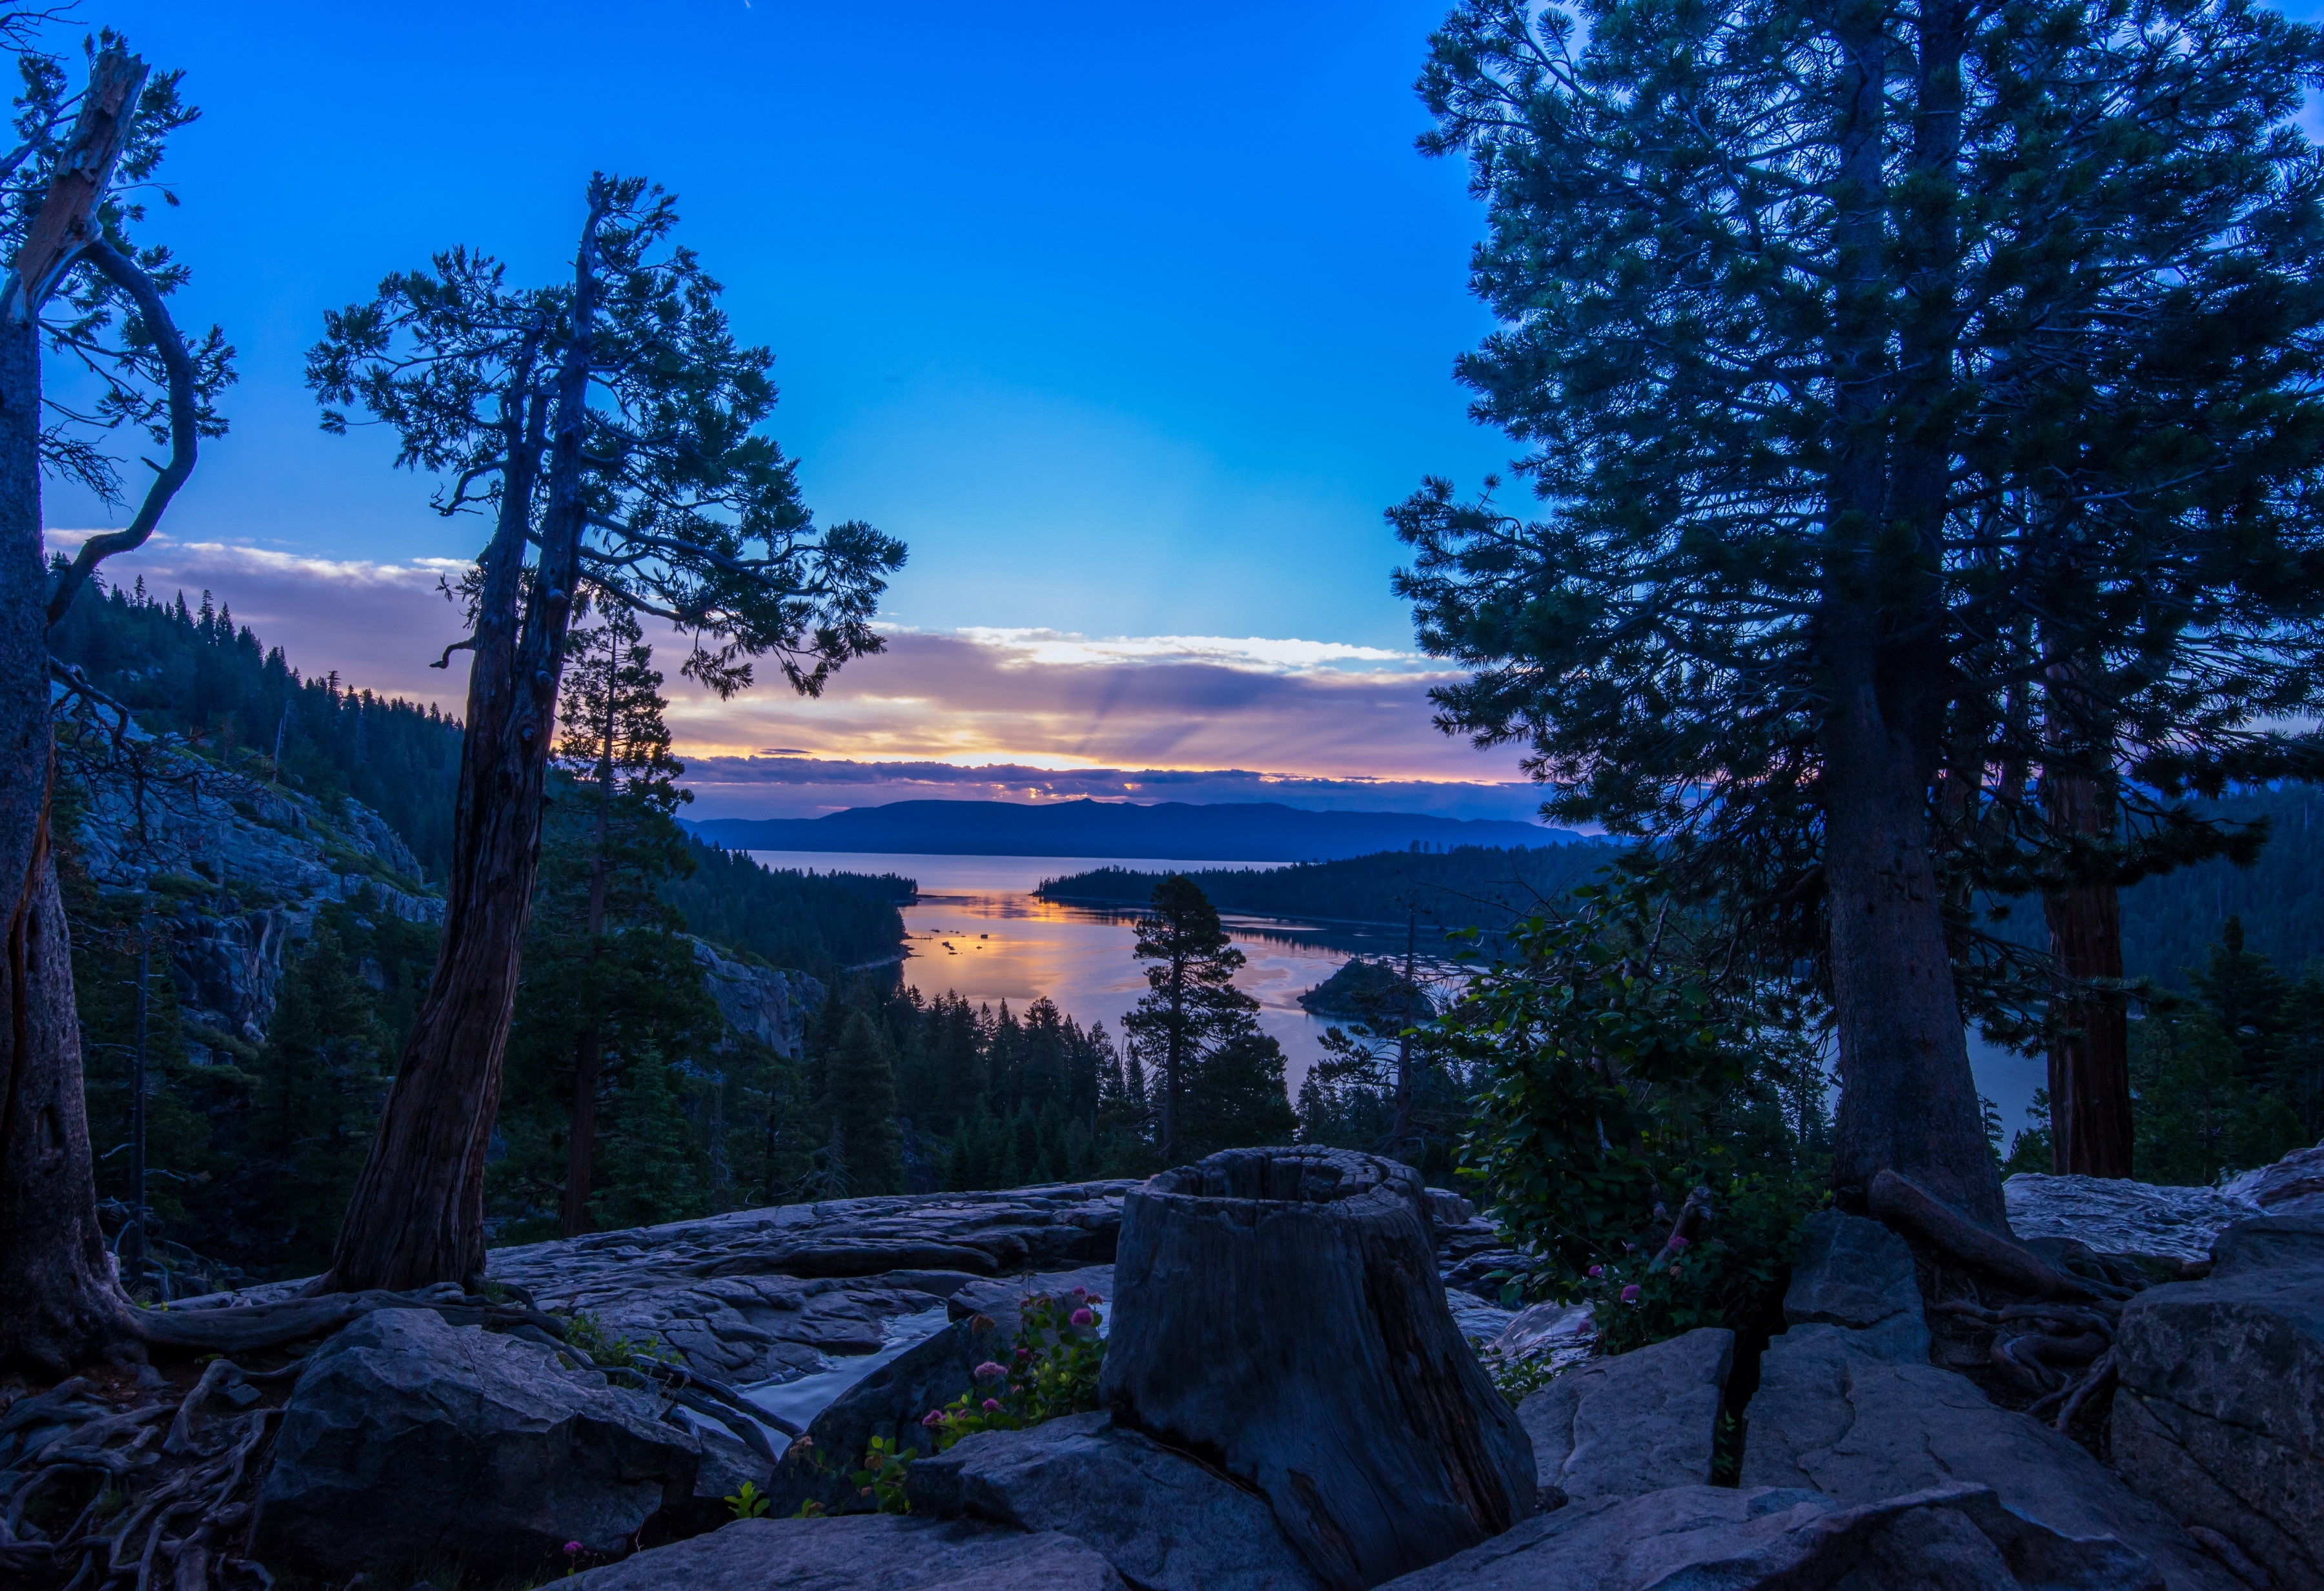 119867 download wallpaper Lake, Nature, Evening, California, Nevada, Sierra Nevada screensavers and pictures for free